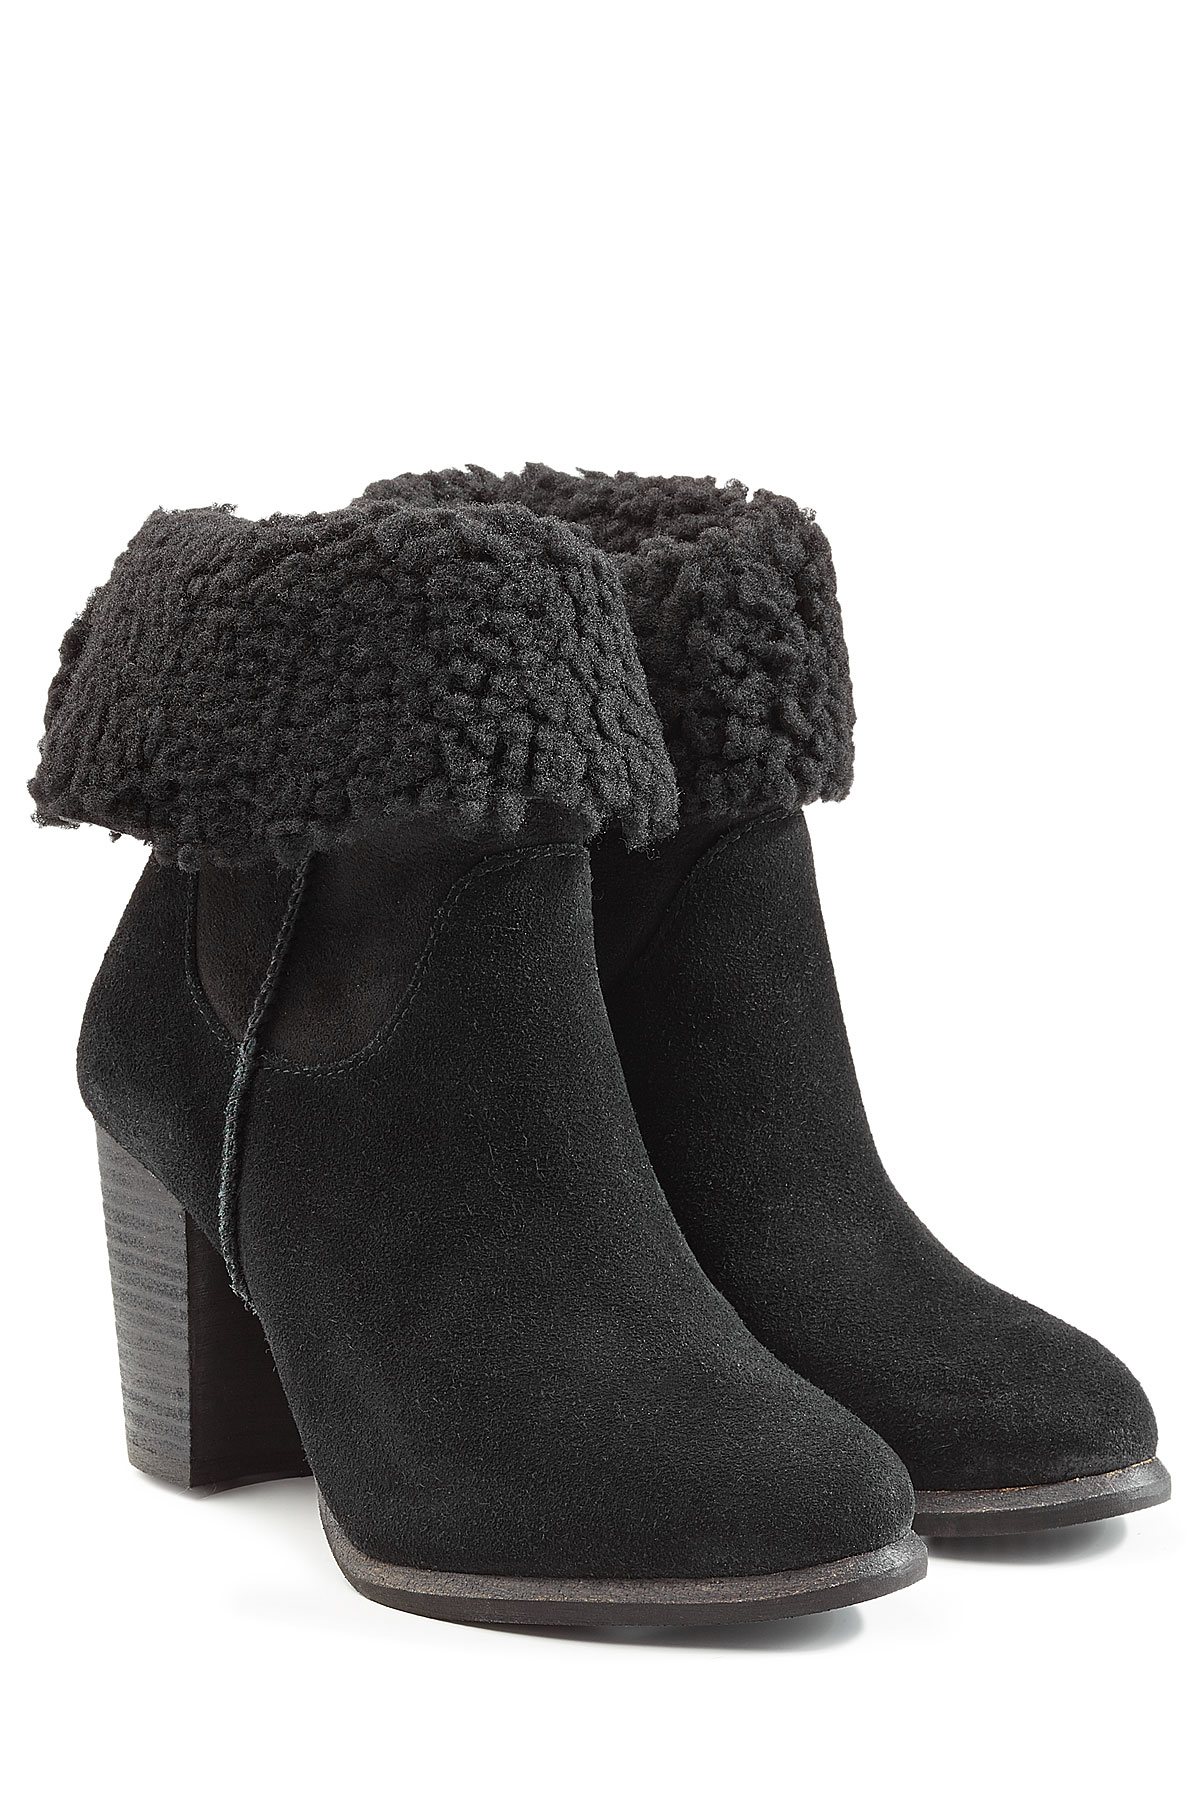 1dcc238eef9 UGG Gray Charlee Suede Ankle Boots With Sheepskin - Black